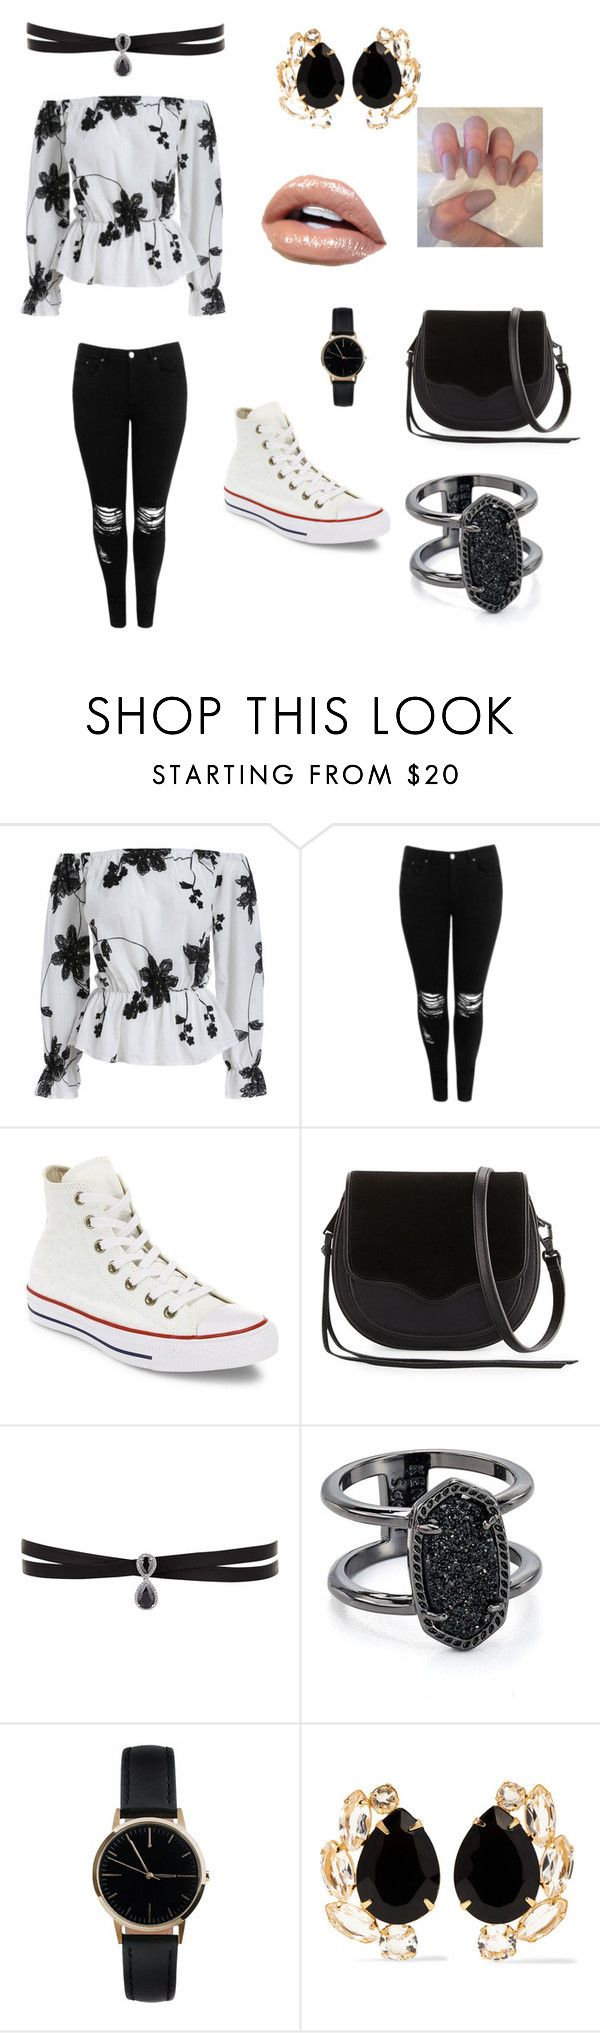 """casual"" by arisofia on Polyvore featuring moda, Boohoo, Converse, Rebecca Minkoff, Fallon, Kendra Scott, Freedom To Exist y Bounkit"